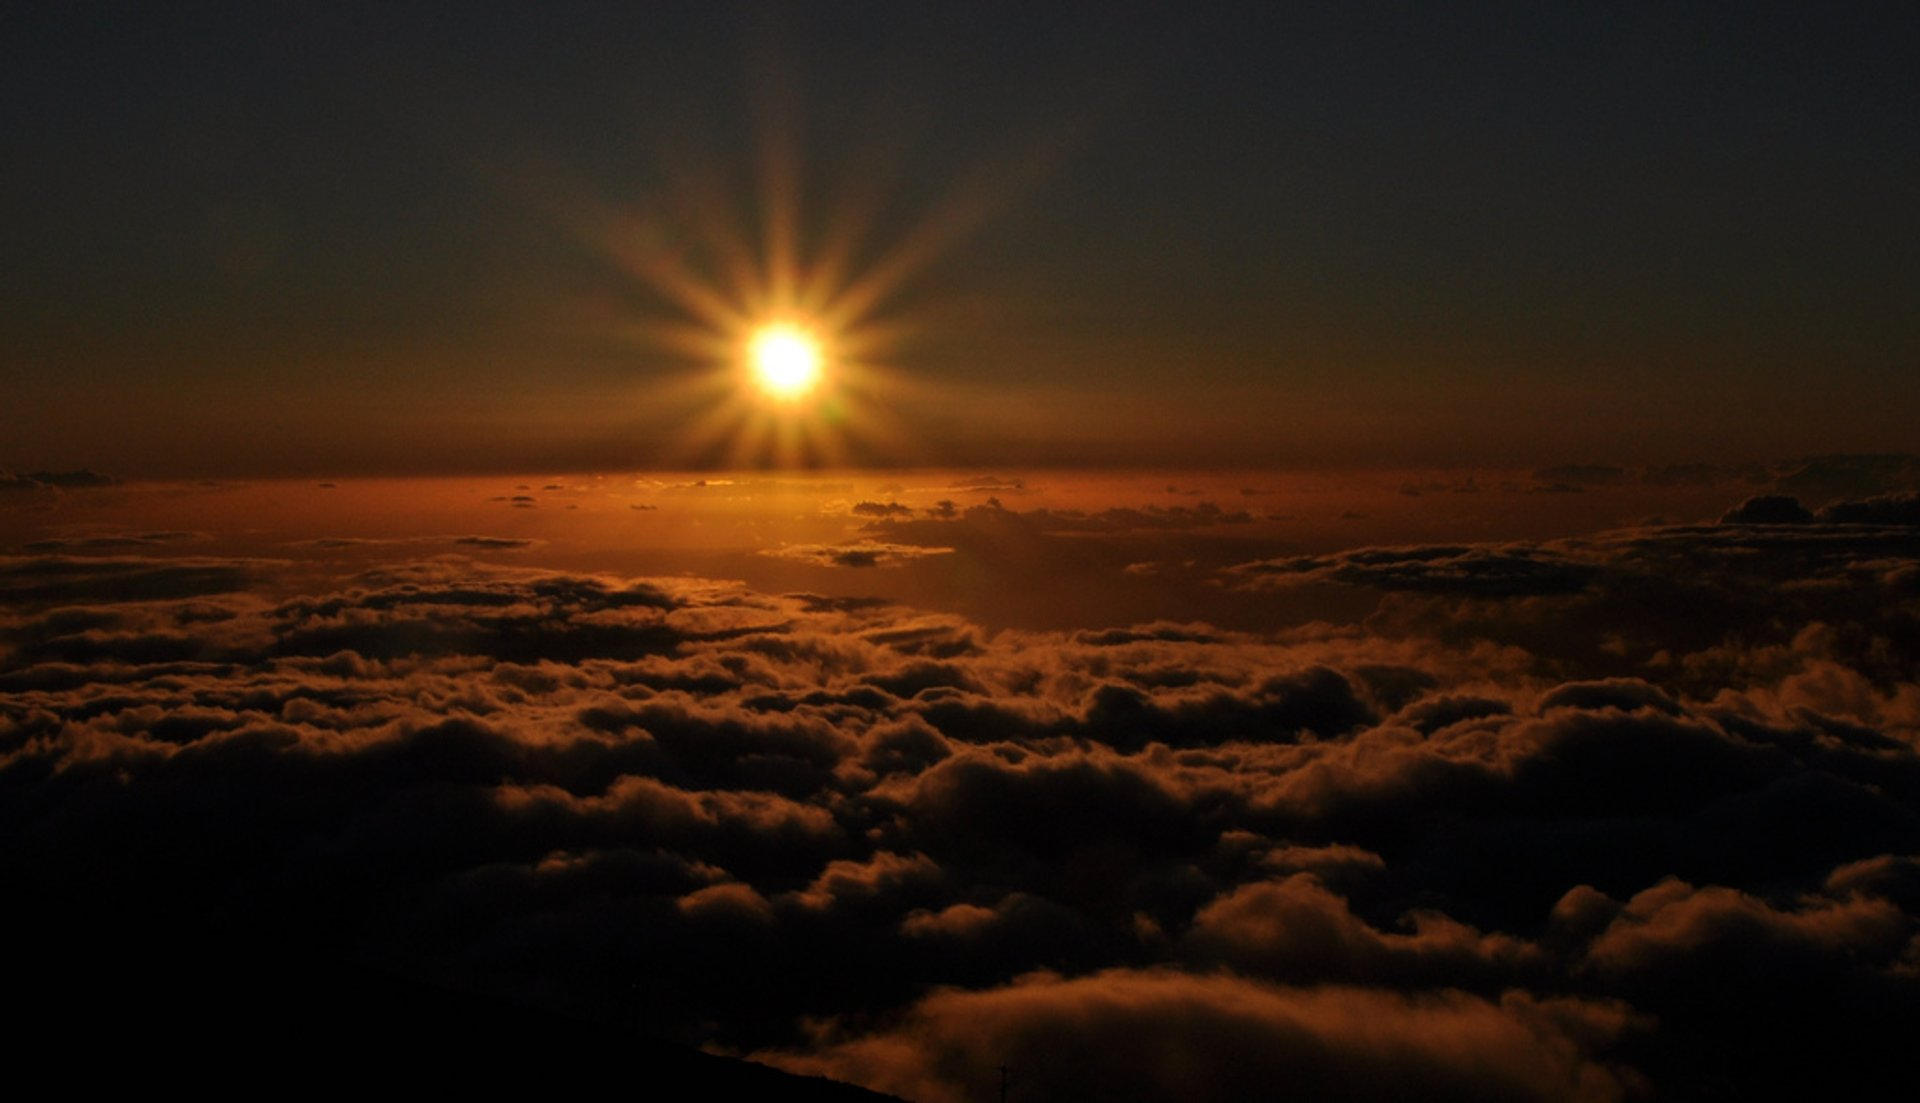 Haleakala Sunrise and Sunset in Hawaii 2020 - Best Time